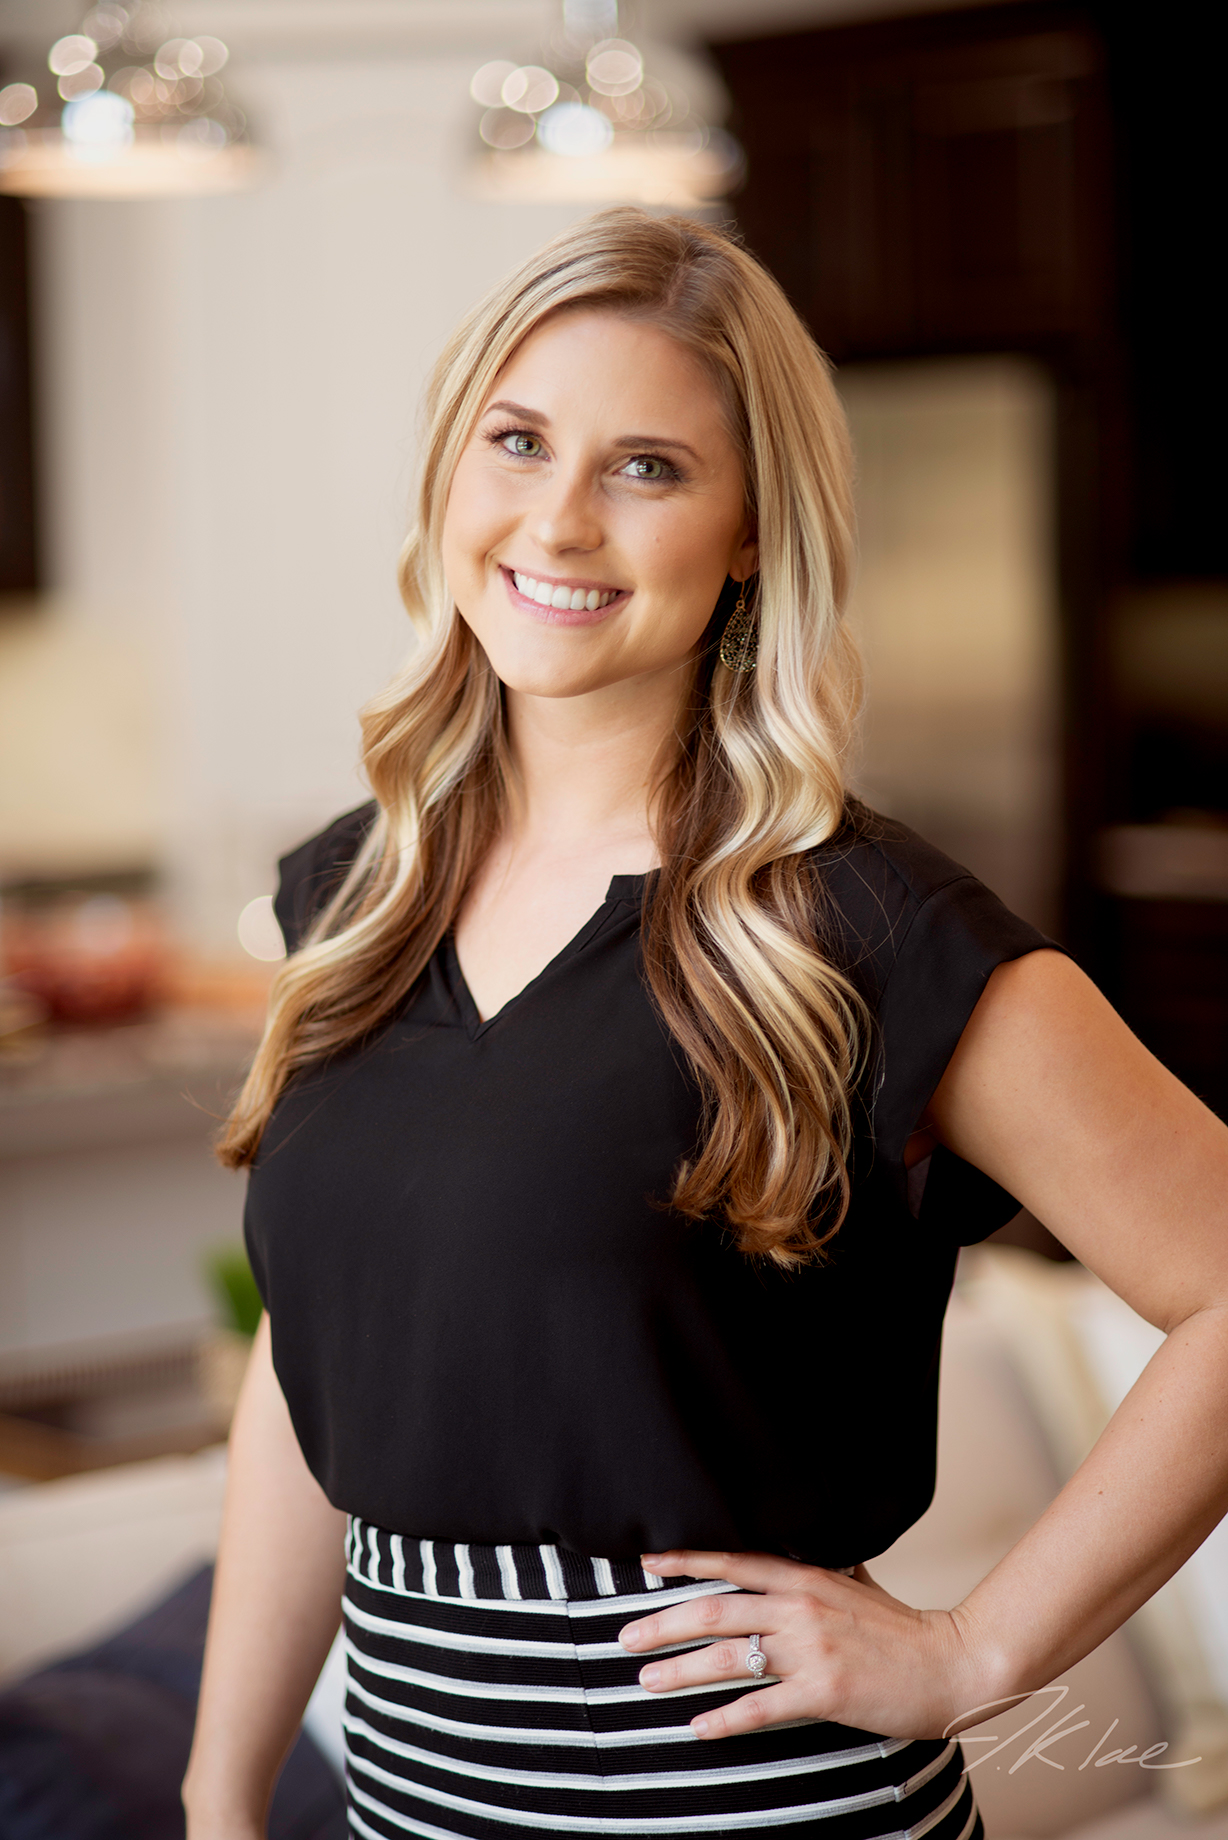 Professional Headshot of Young Female Realtor